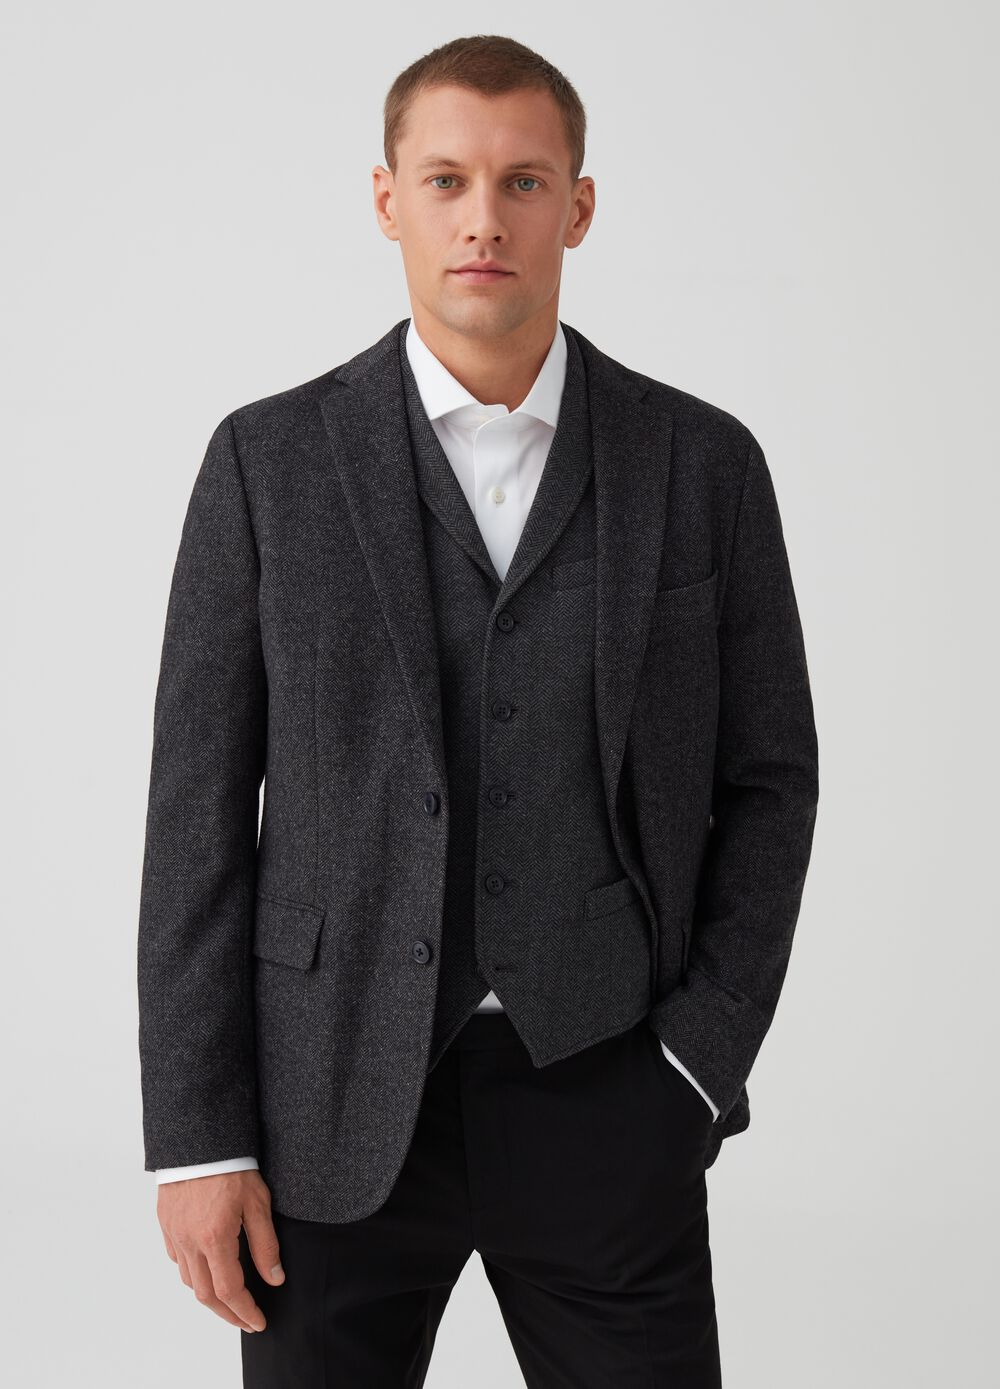 Two-button jacket with pockets and herringbone pattern